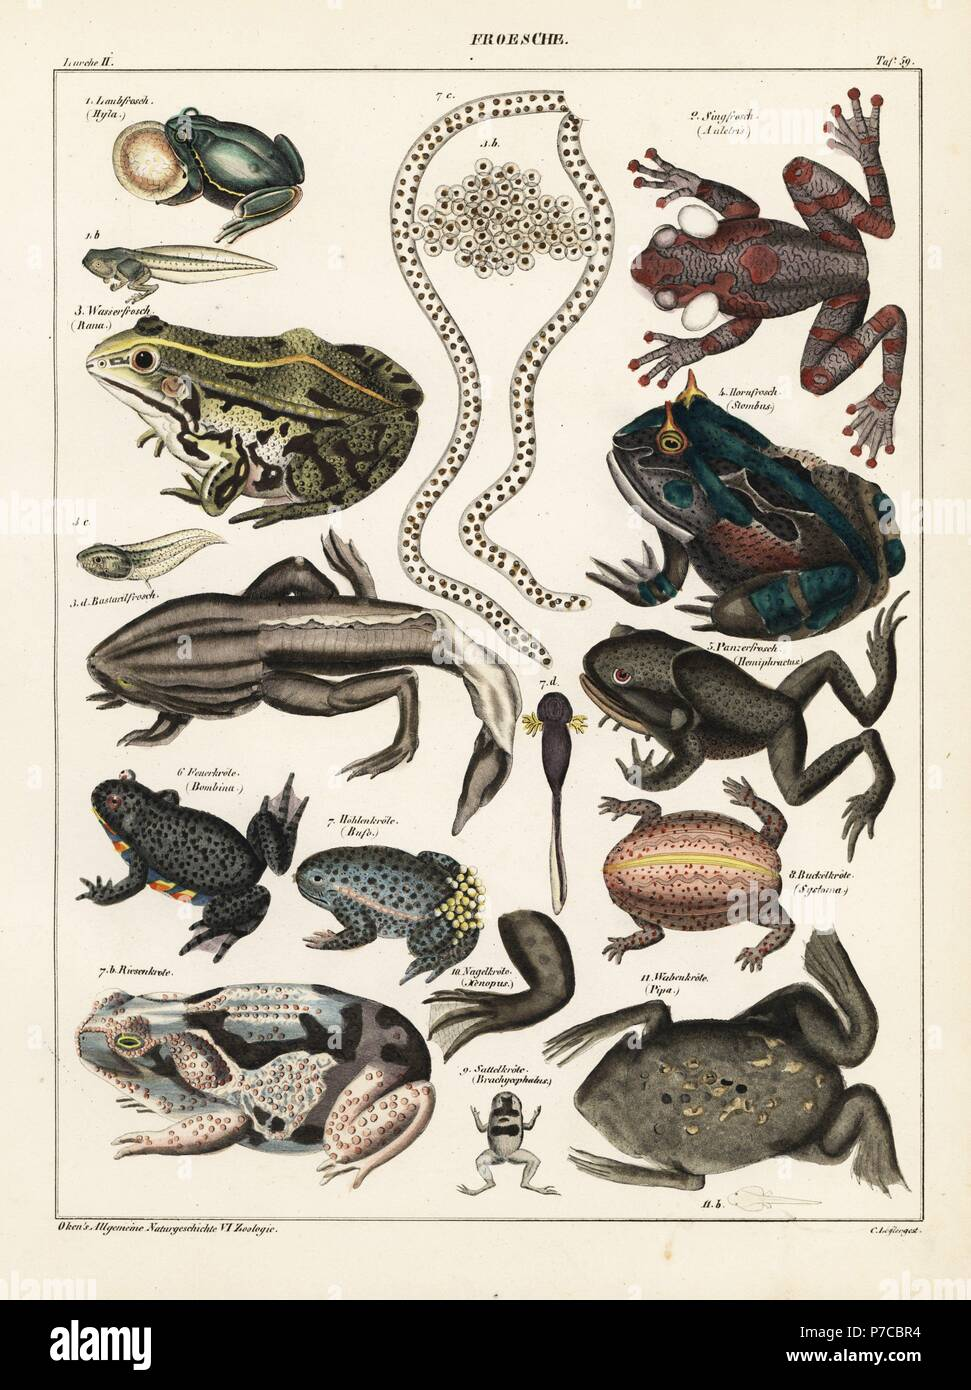 Frogs, toads and tadpoles. European tree frog, Hyla arborea, rattle-voiced tree frog, Auletris crepitans, edible frog, Rana esculenta, shrinking frog, Pseudis paradoxa, Surinam horned frog, Stombus cornutus, Spix's horned tree frog, Hemiphractus scutatus, fire-bellied toad, Bombina bombina, midwife toad, Alytes obstetricans, cane toad, Rhinella marina, giant rain frog, Breviceps gibbosus, pumpkin toadlet, Brachicephalus ephippium, African clawed frog, Xenopus laevis, and Suriname toad, Pipa pipa. Lithograph by C. Loeffler from Lorenz Oken's Universal Natural History, Allgemeine Naturgeschichte - Stock Image